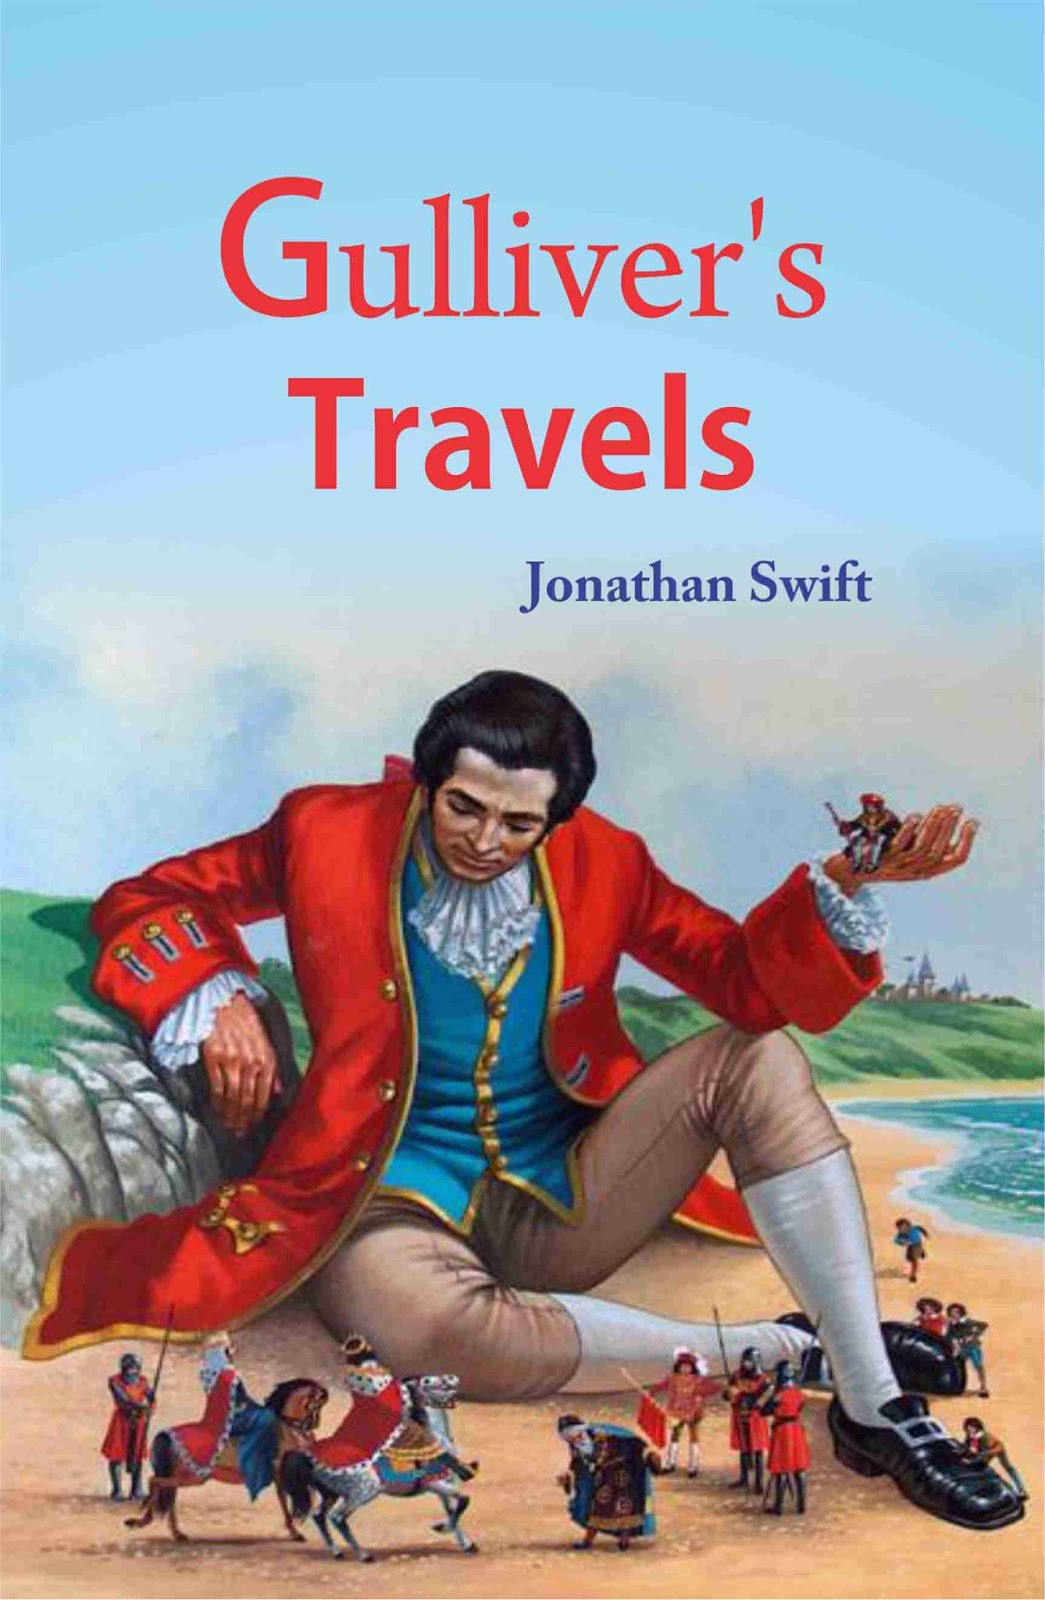 misanthropic viewpoints jonathan swift s gulliver s travels And find homework help for other jonathan swift questions at enotes  the title  of misanthrope is reserved usually for someone who hates or distrusts humanity   each of the stories in gulliver's travels depict the lowest aspects of human.